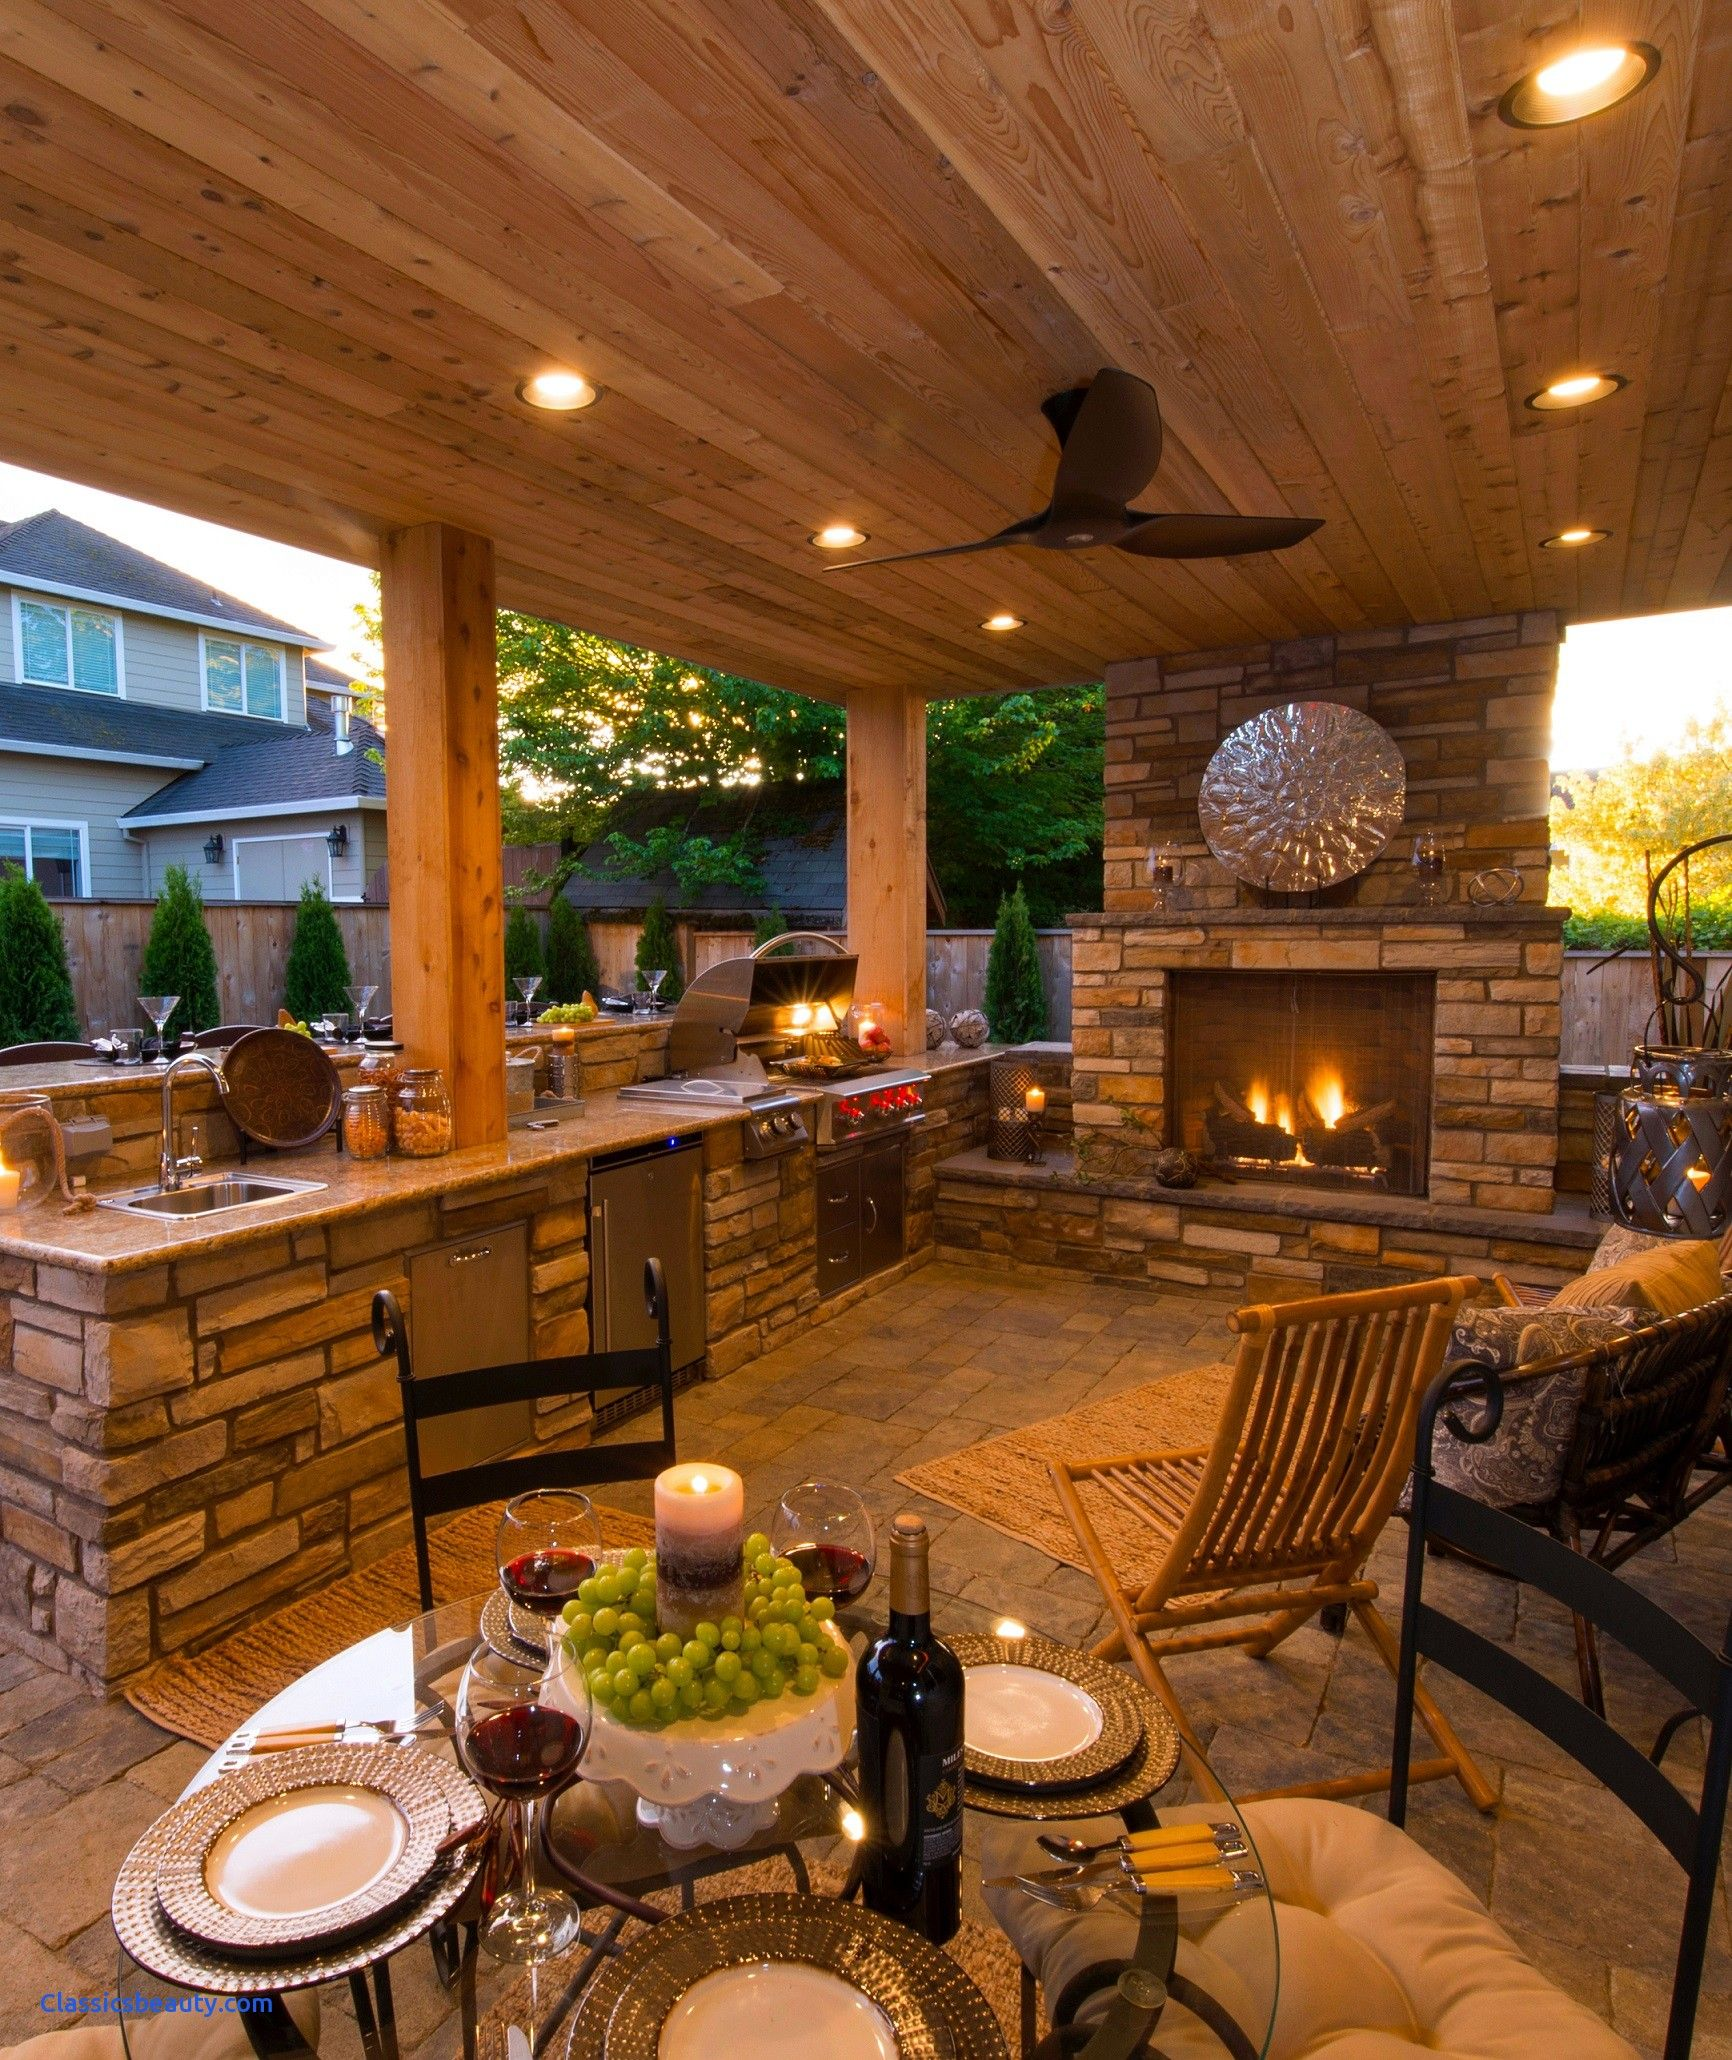 Inspirational Outdoor Kitchen Ideas For Small Spaces Outdoor Kitchen Ideas Images Outdoor Outdoor Fireplace Designs Rustic Outdoor Fireplaces Outdoor Kitchen